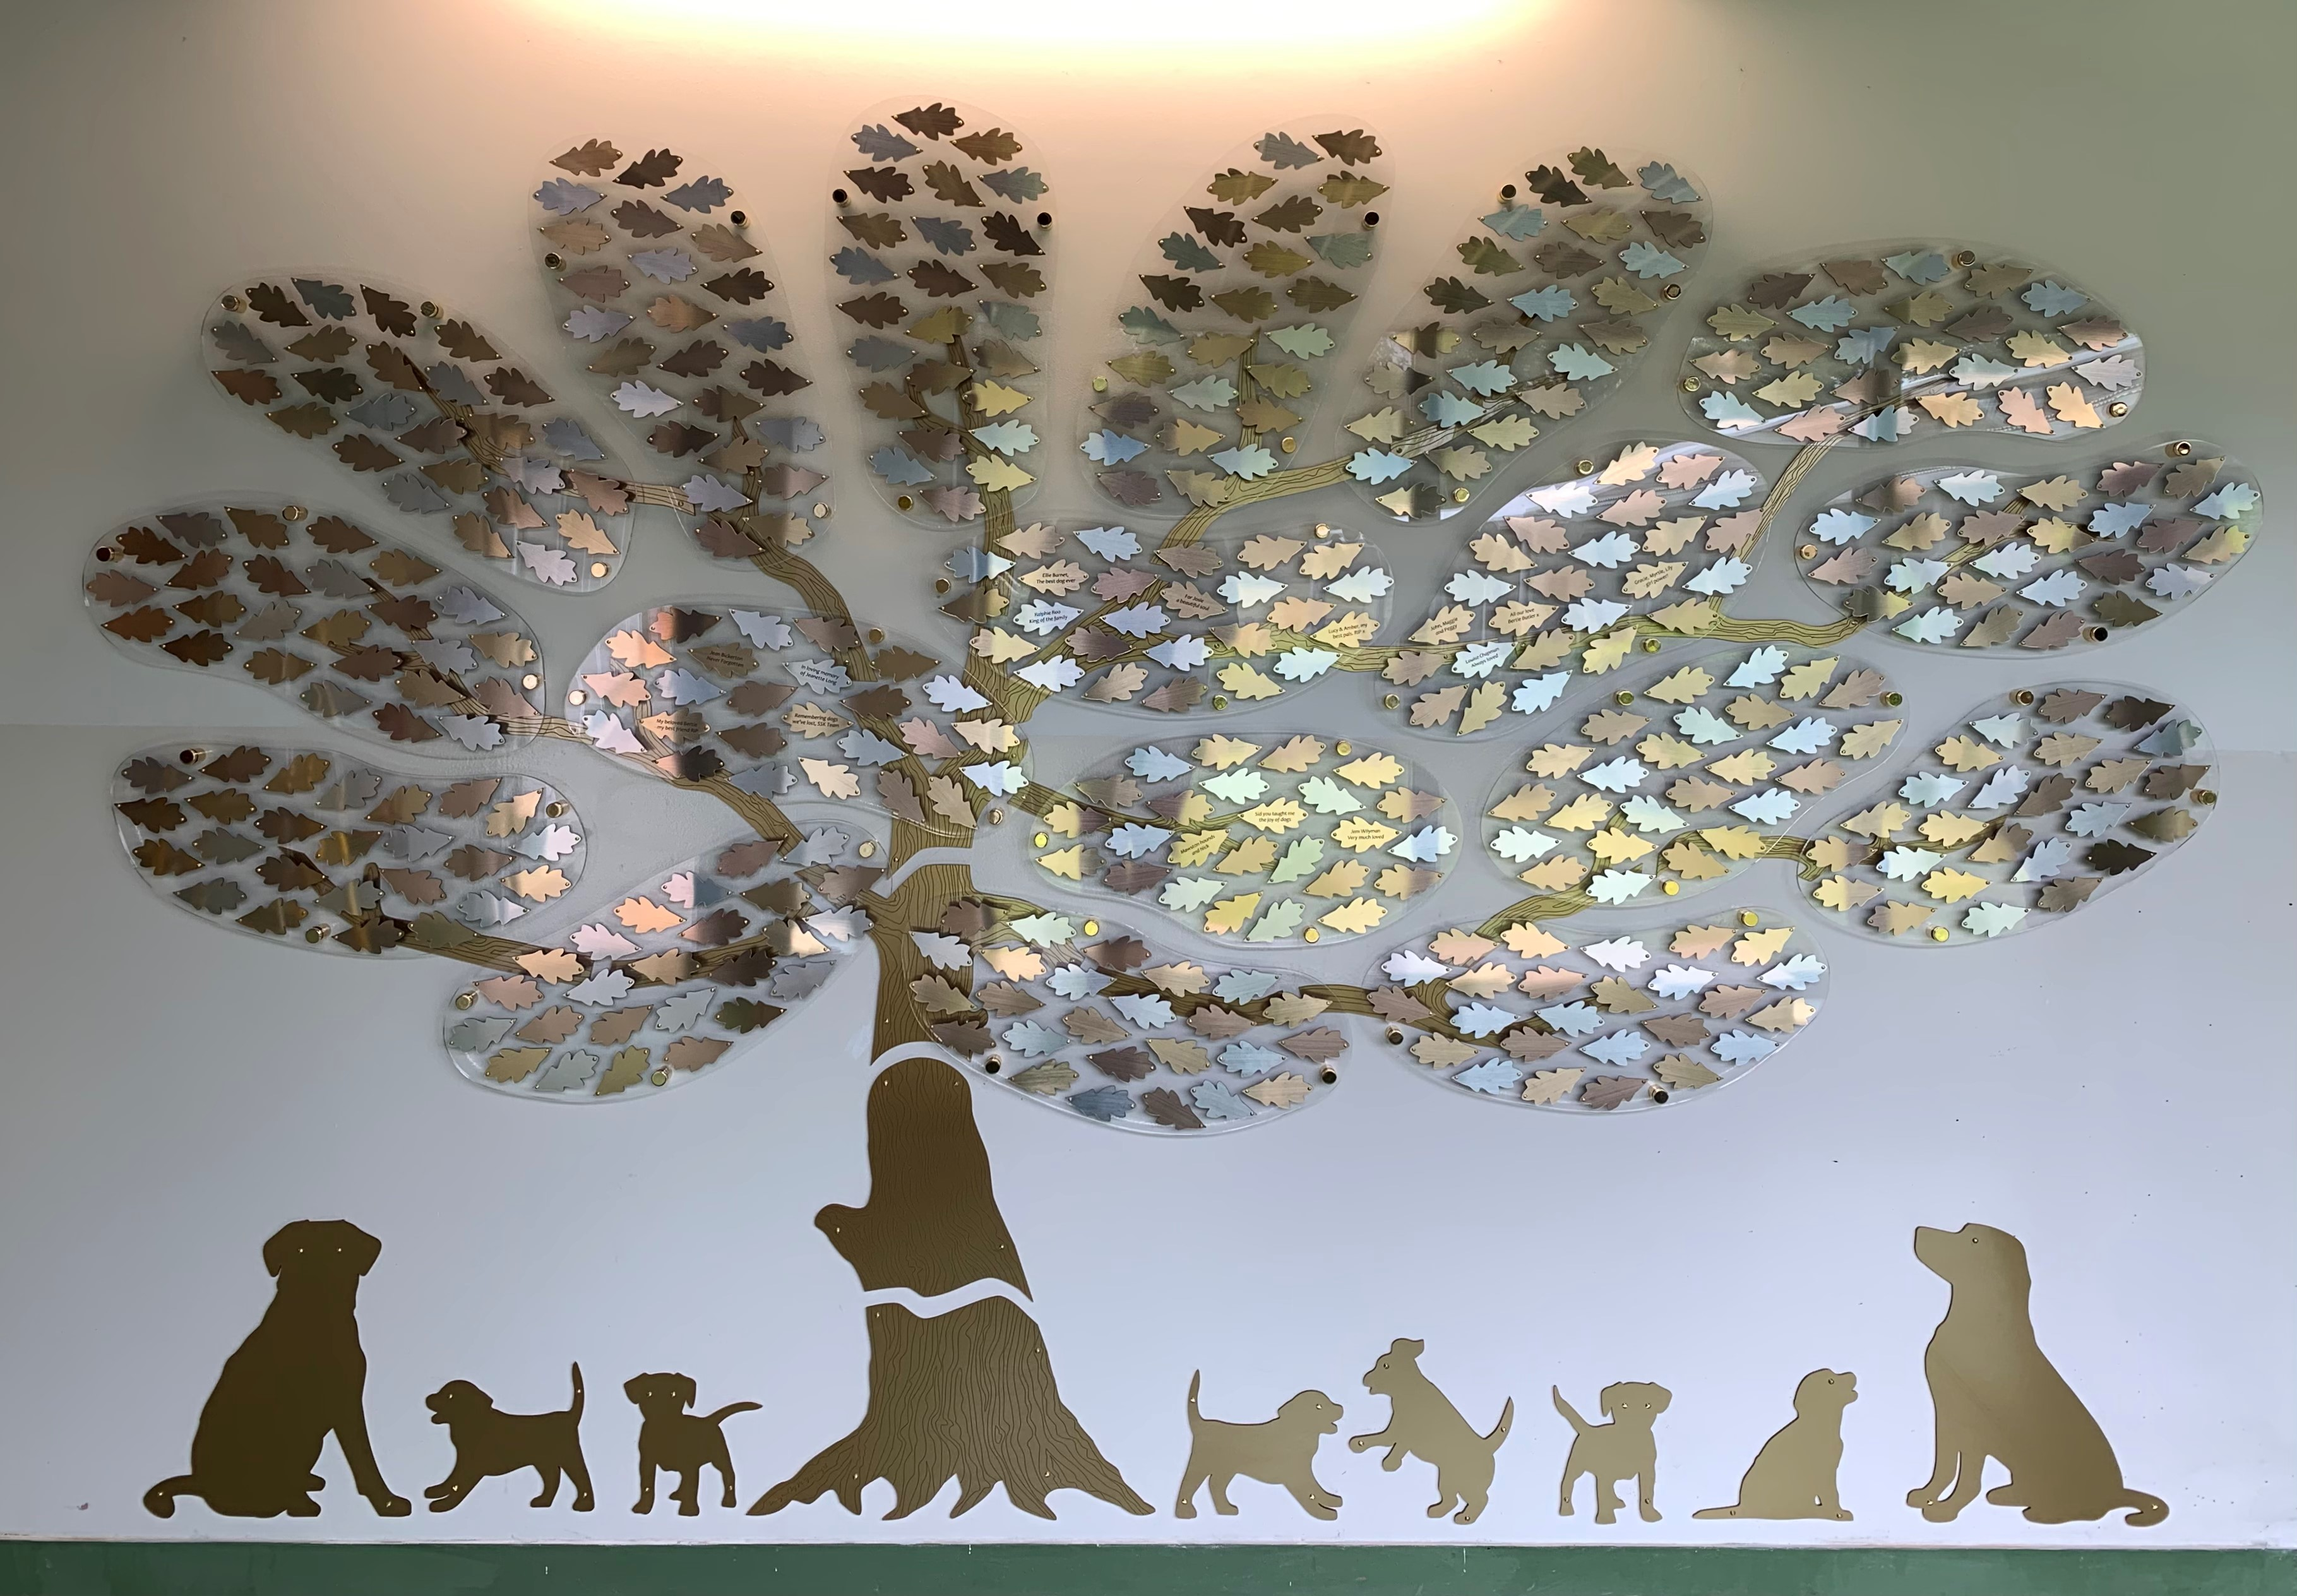 Image shows a large sculpture of a golden tree with hundreds of leaves attached to a wall. Under the tree, there are puppies playing and older dogs looking up at the leaves. Each leaf is dedicated in the name of a special pet.